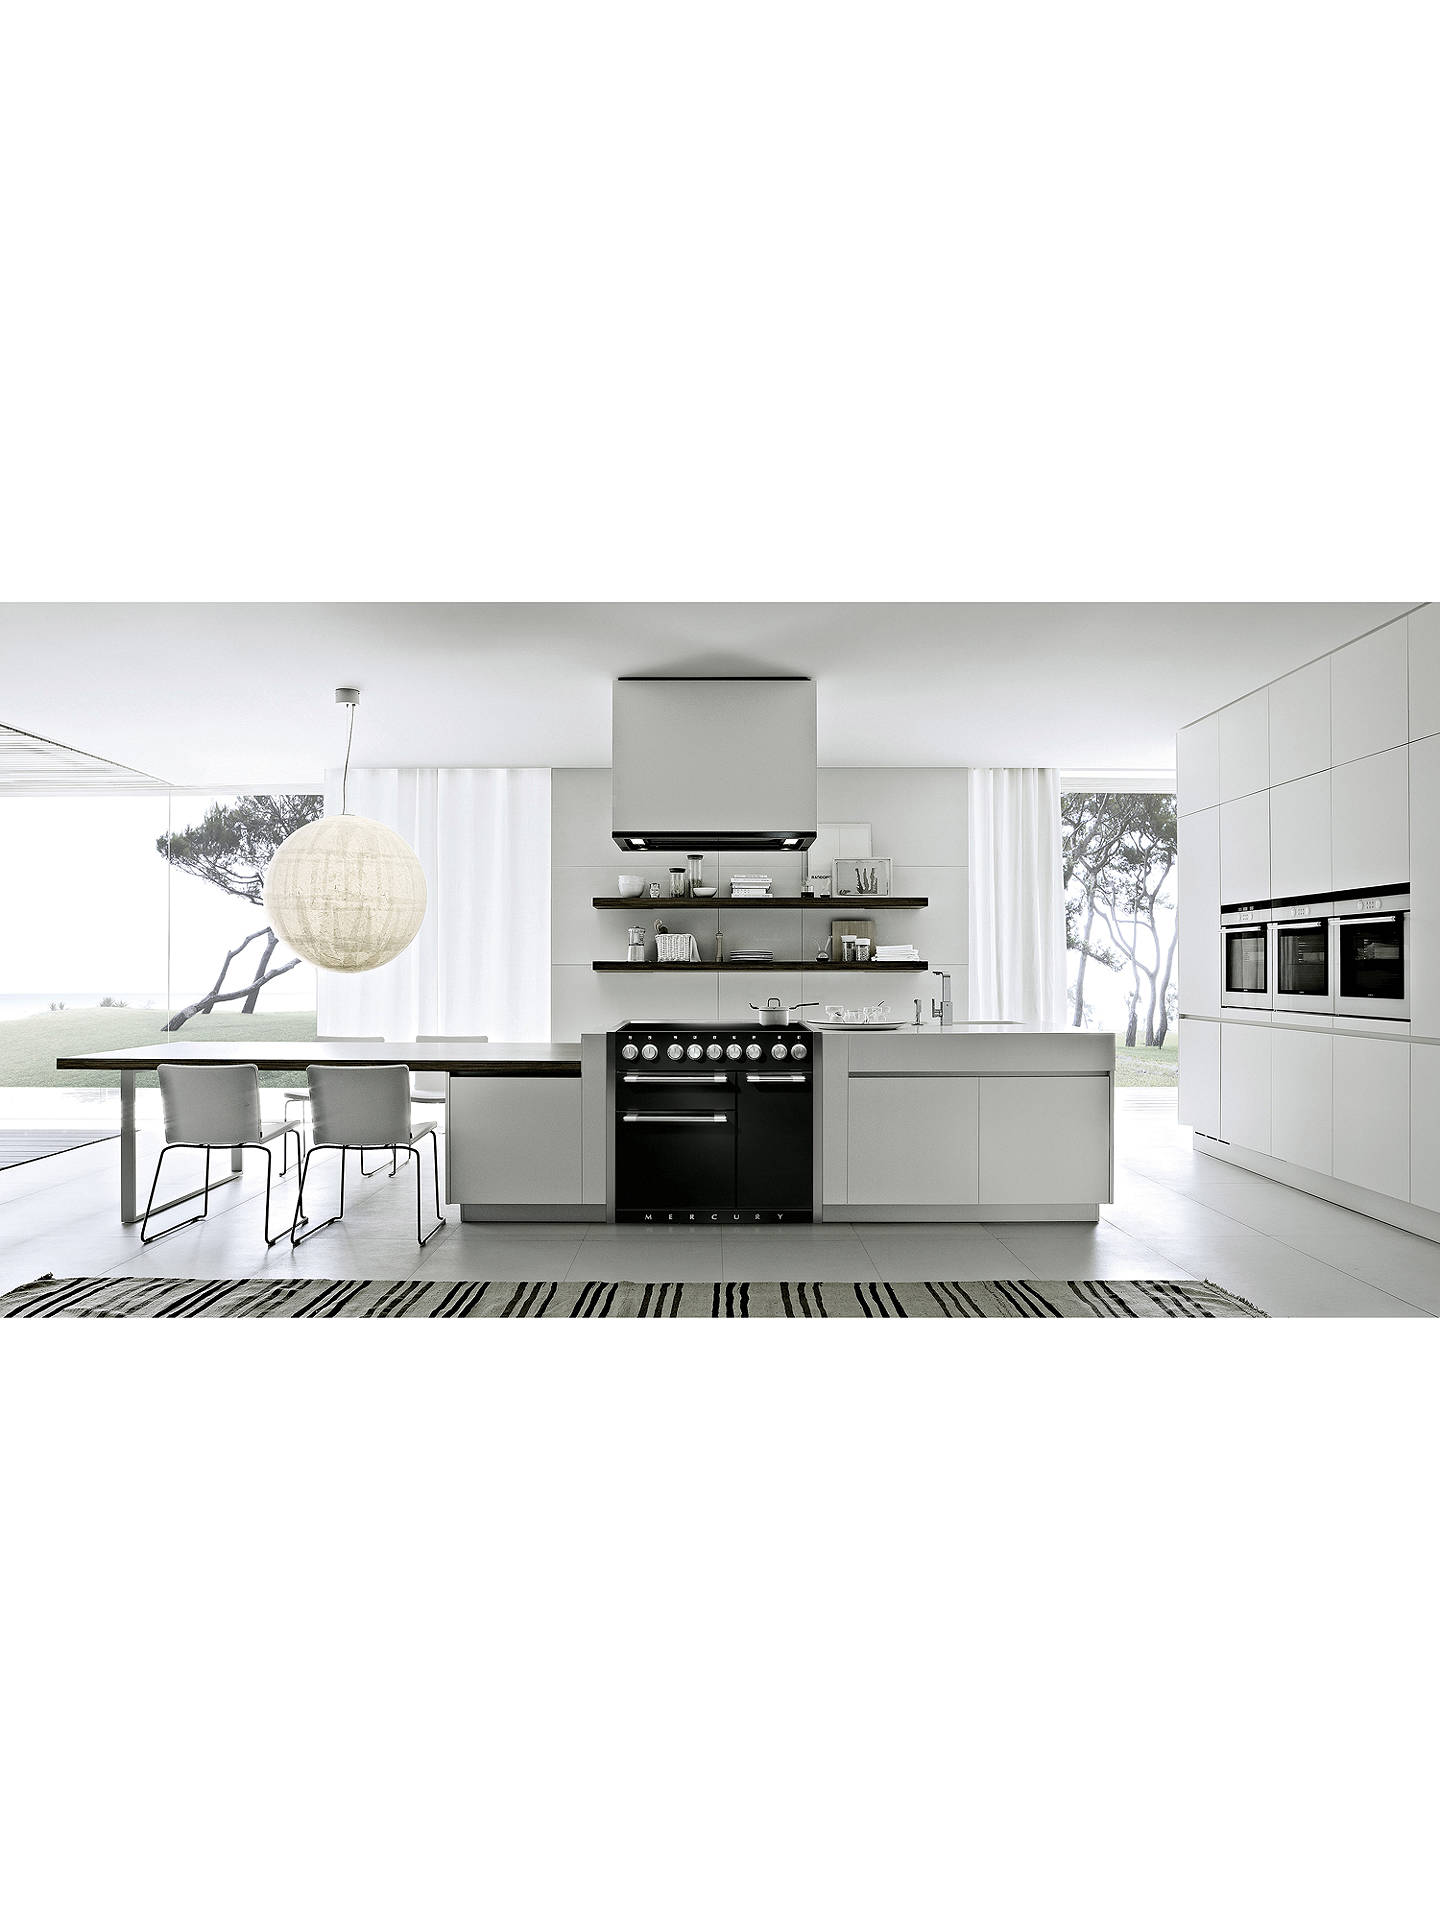 BuyMercury 1000 Electric Range Cooker with Induction Hob, Ash Black Online at johnlewis.com